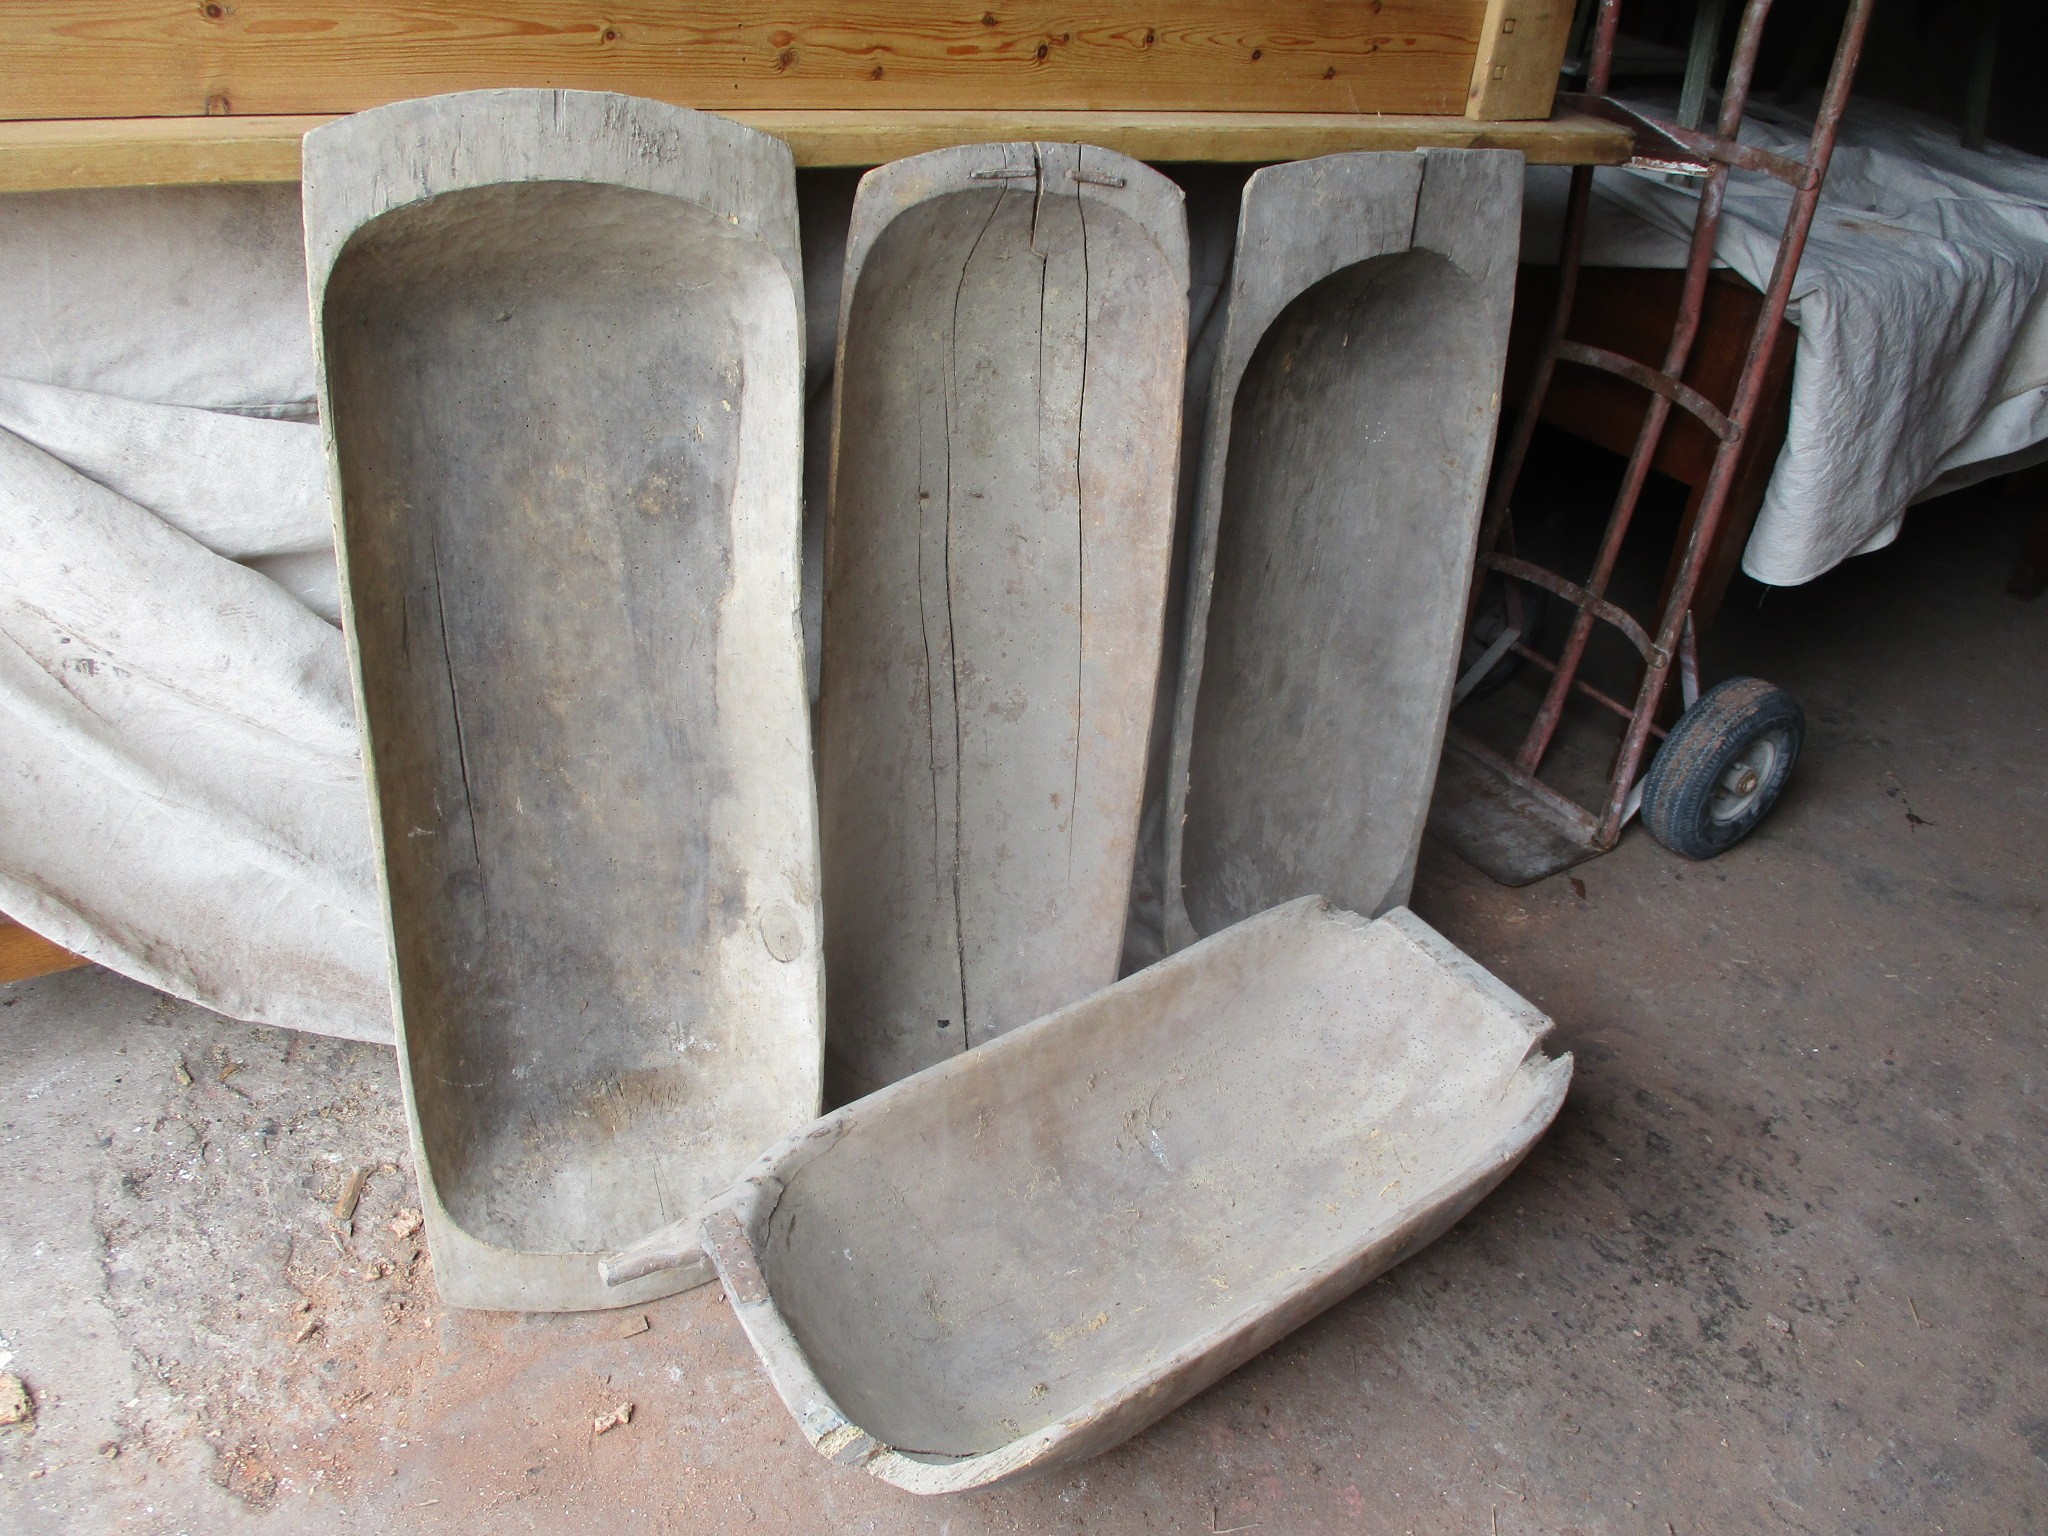 dough trugs or troughs